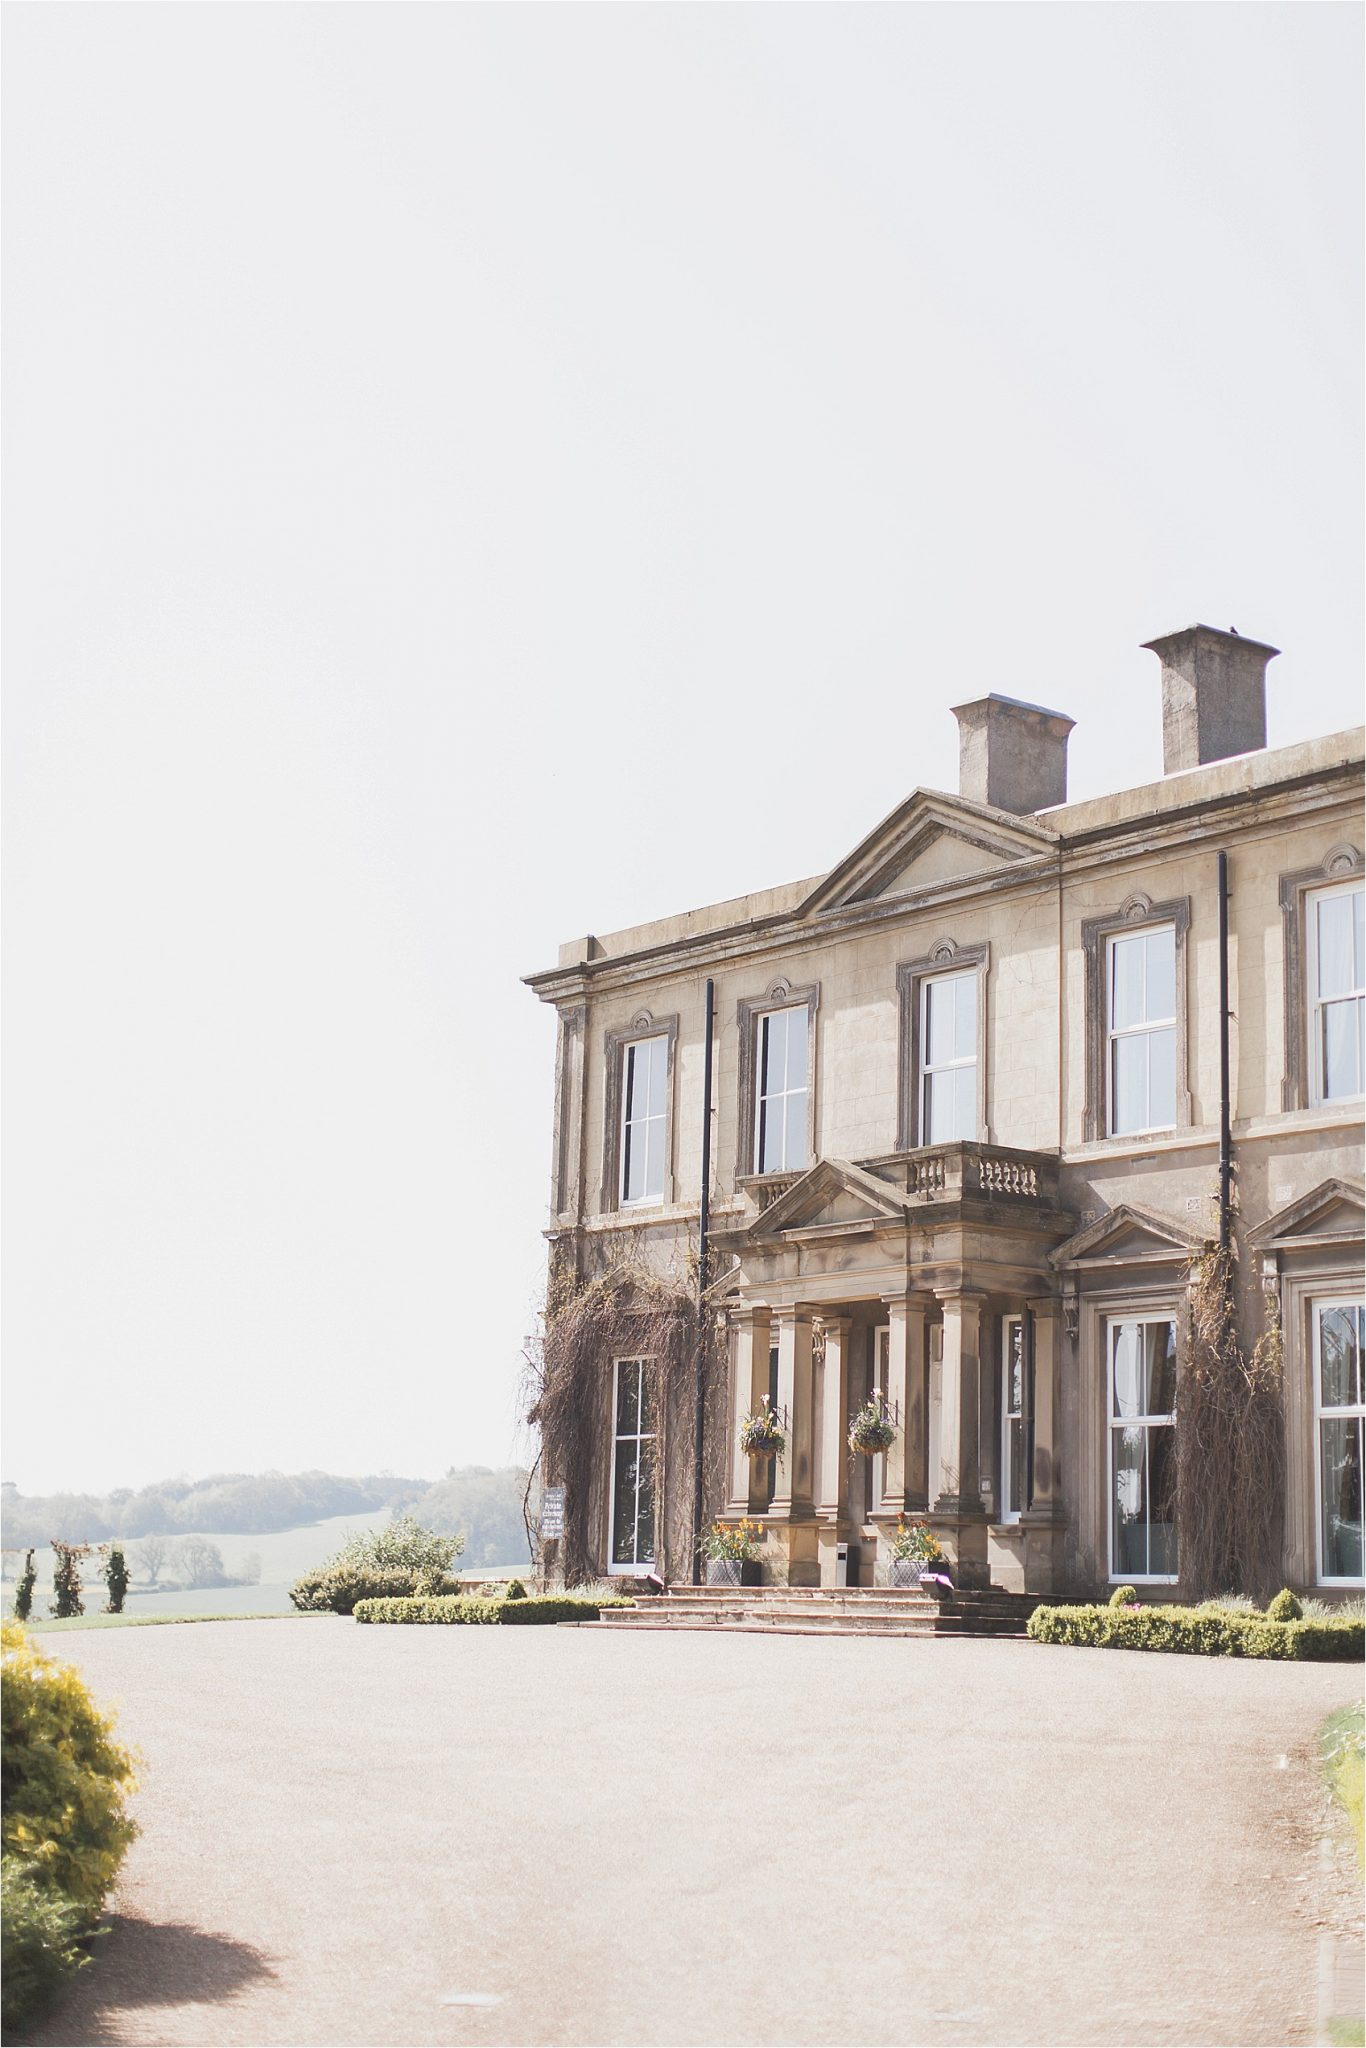 The front entrance of Hothorpe Hall